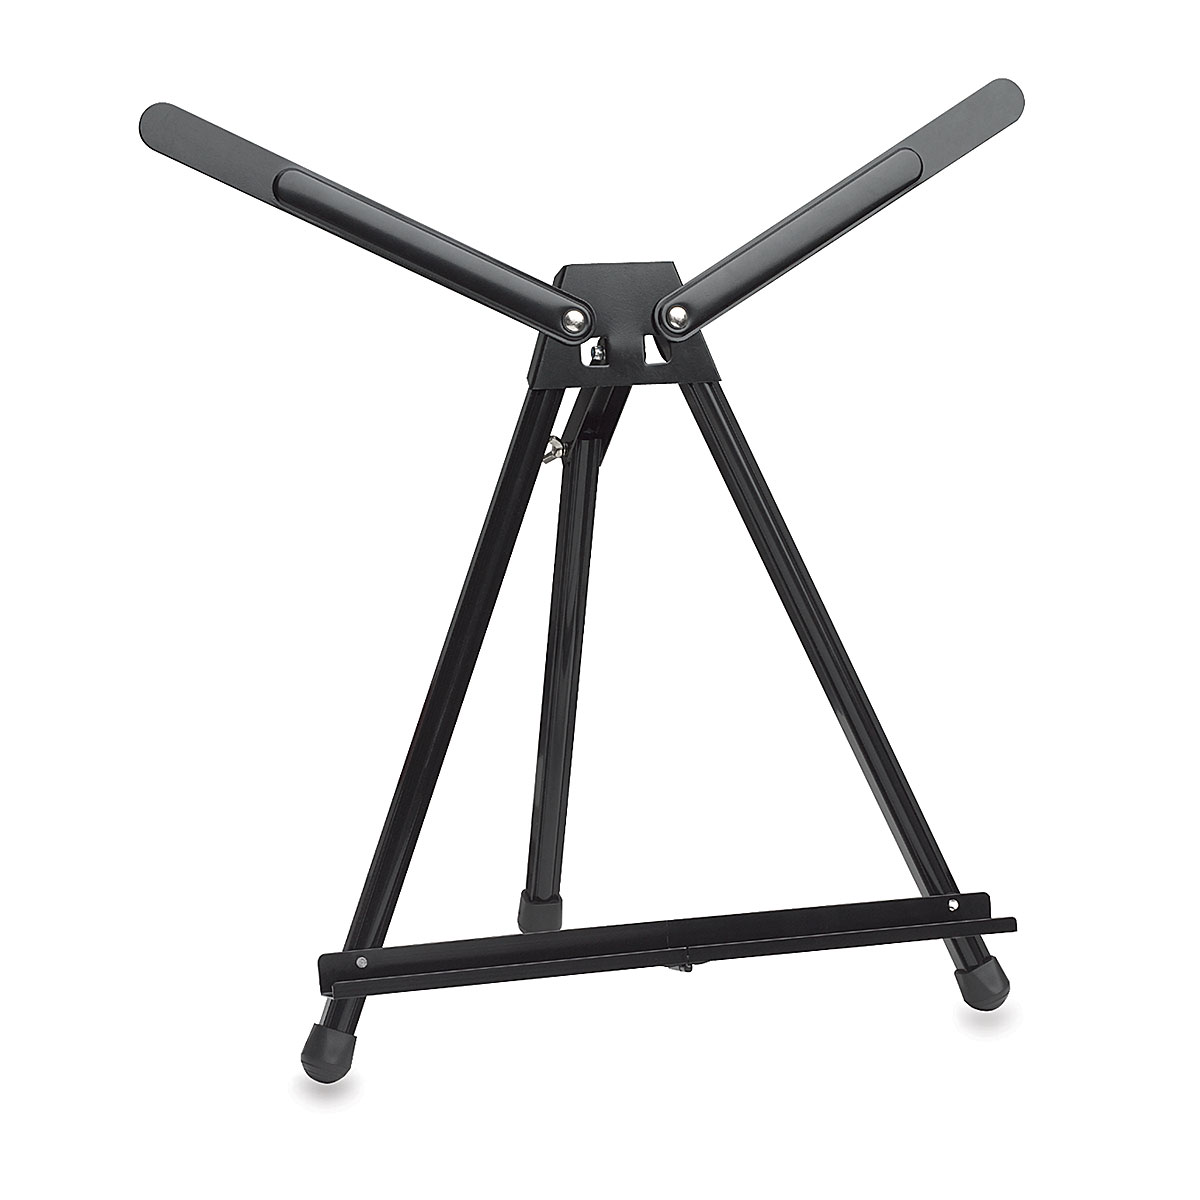 Very Sturdy SMALL Iron or Metal Easel Display Stands!! 5 A Lot of Five